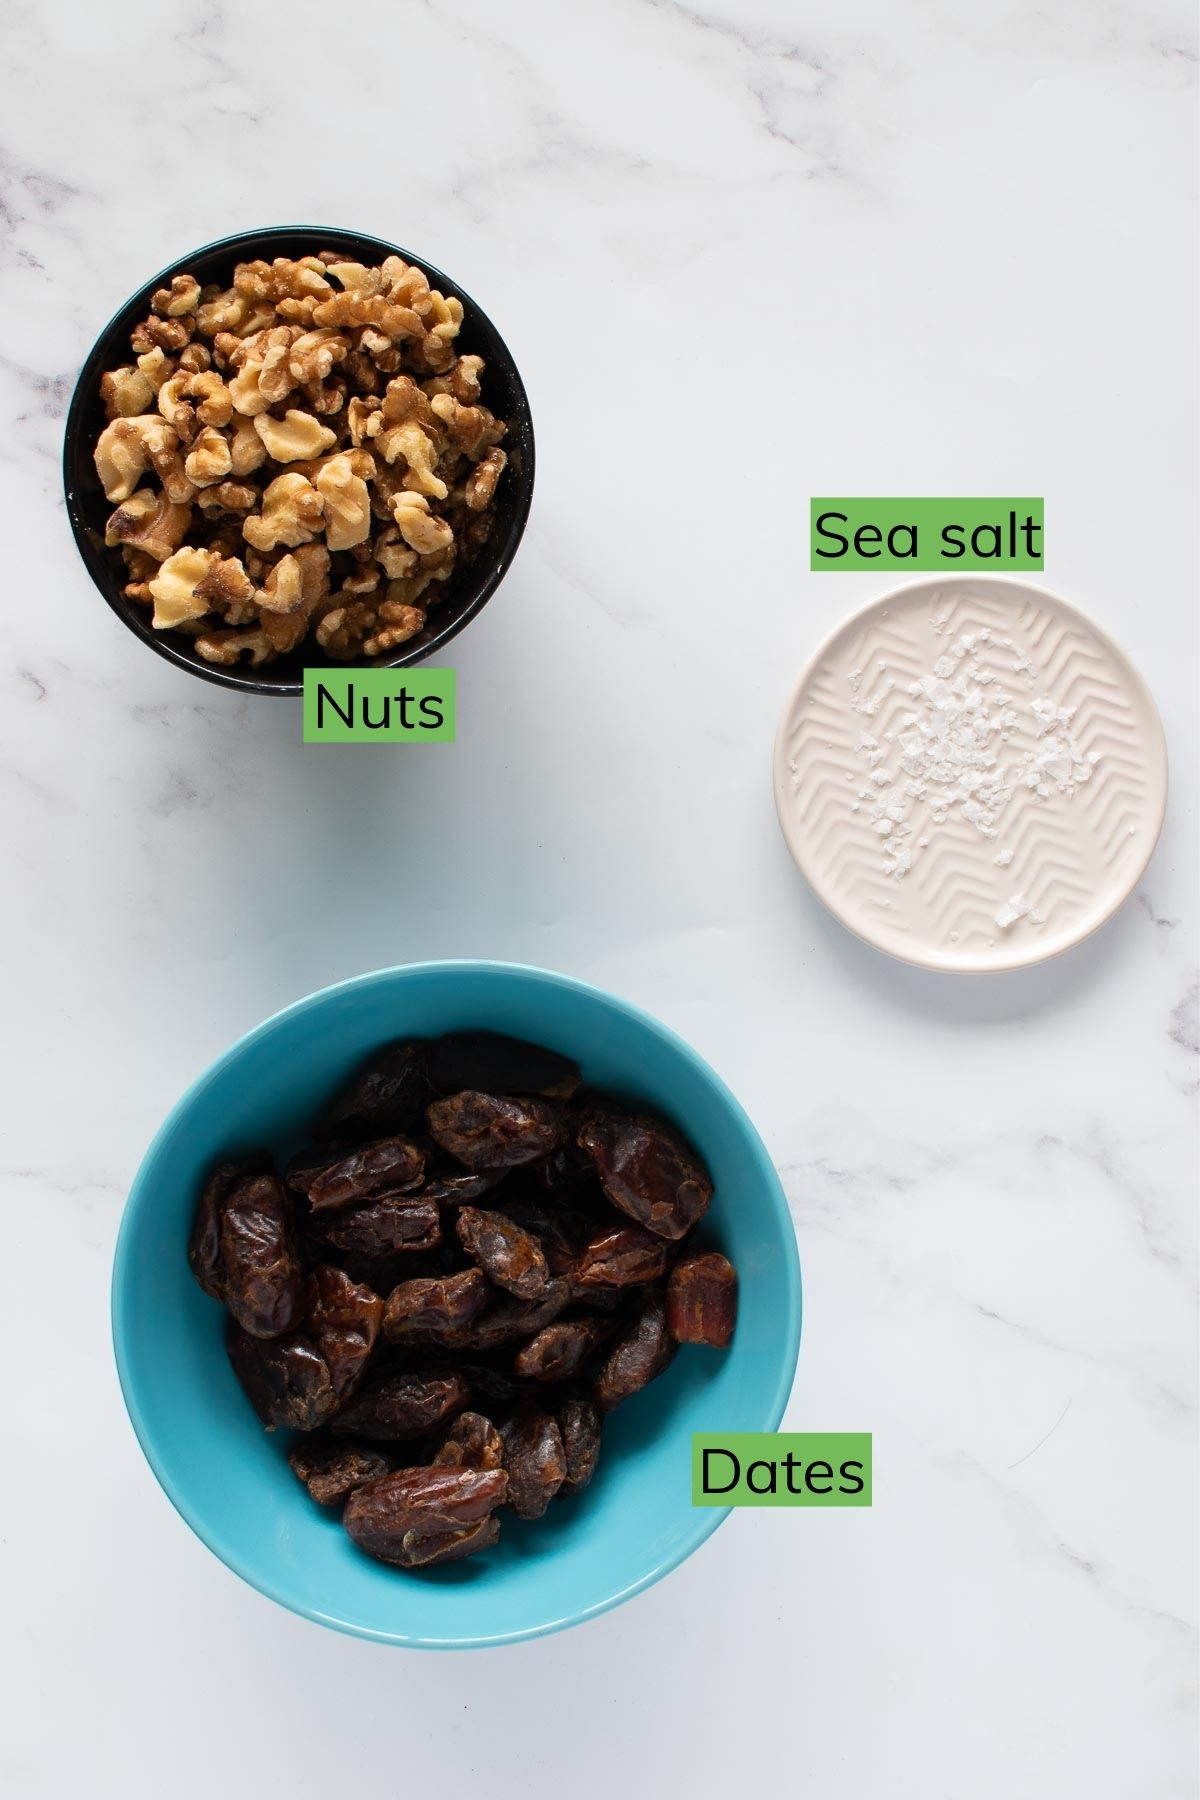 Nuts, dates and sea salt on a table.